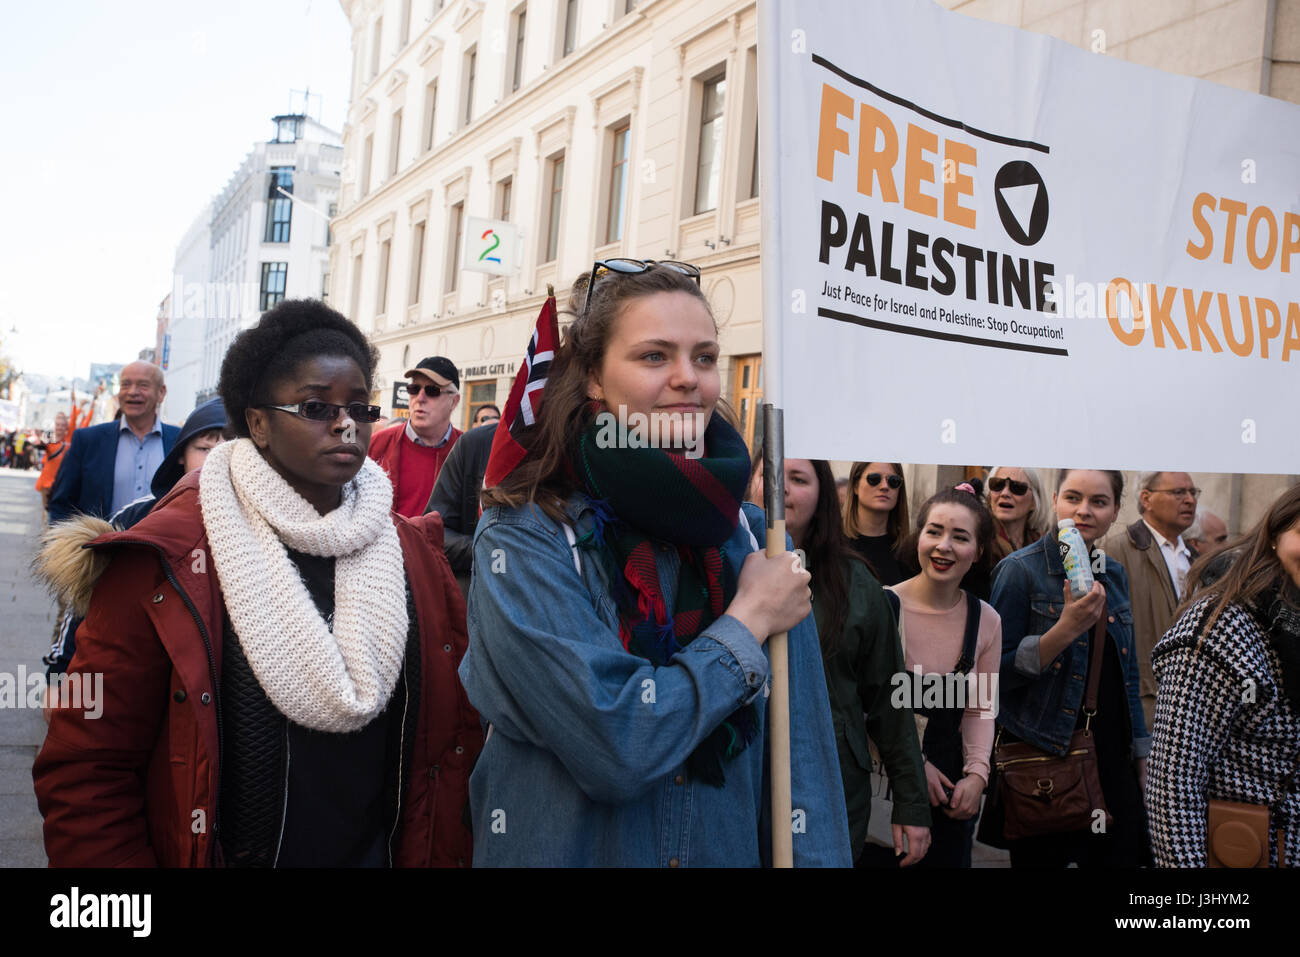 Activists carry a banner reading: 'Free Palestine' at the annual May Day march in Oslo, Norway, May 1, 2017. - Stock Image